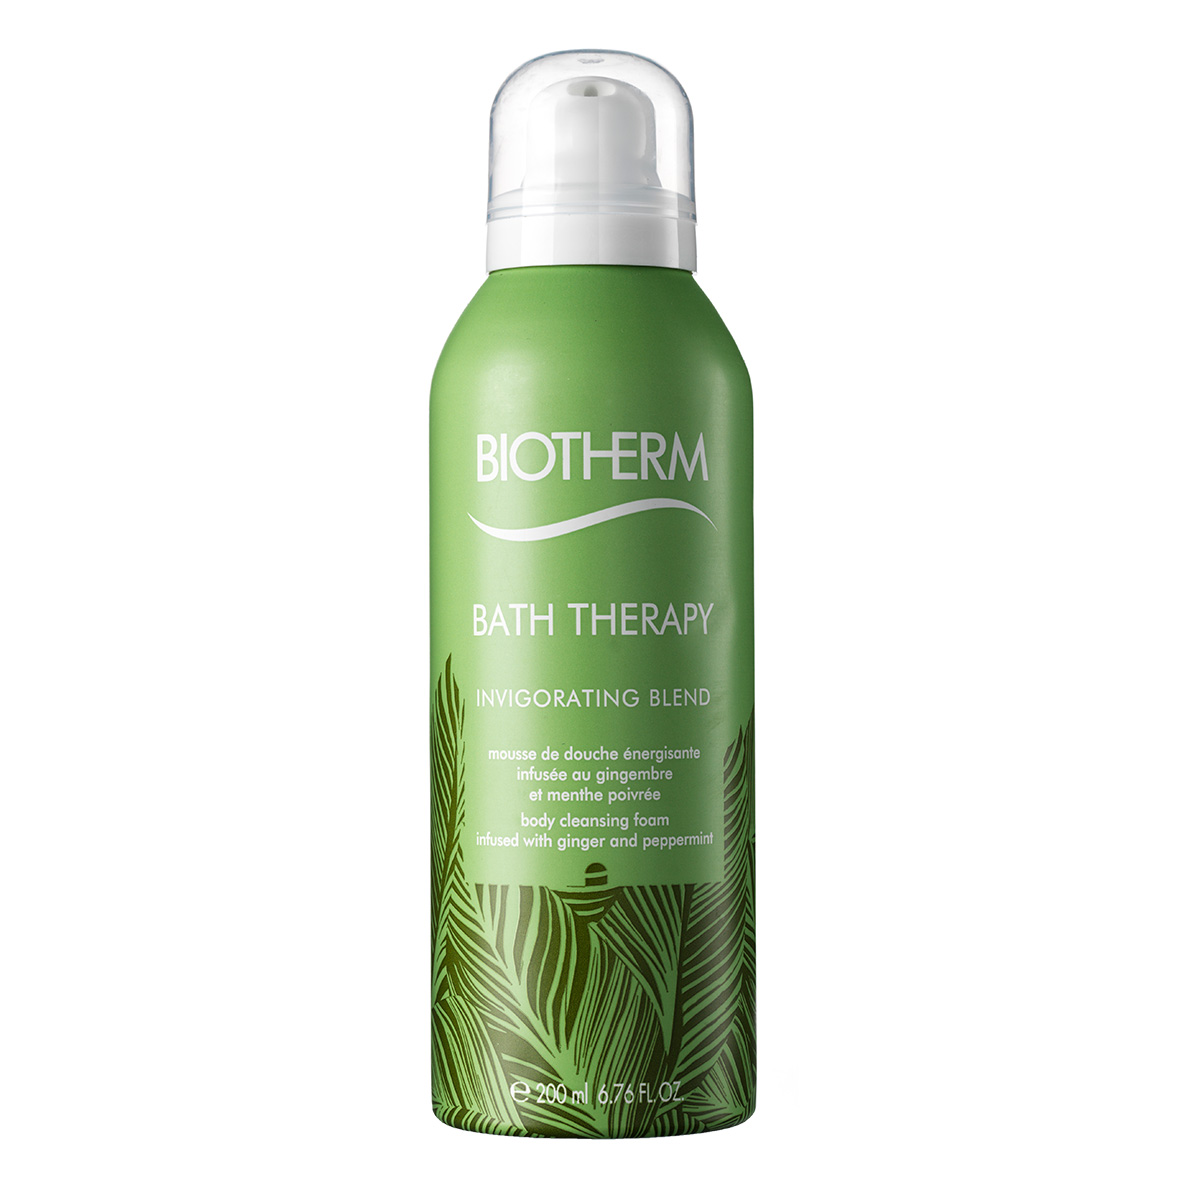 Billede af Biotherm Bath Therapy Invigorating Blend Body Cleansing Foam - 200 ml